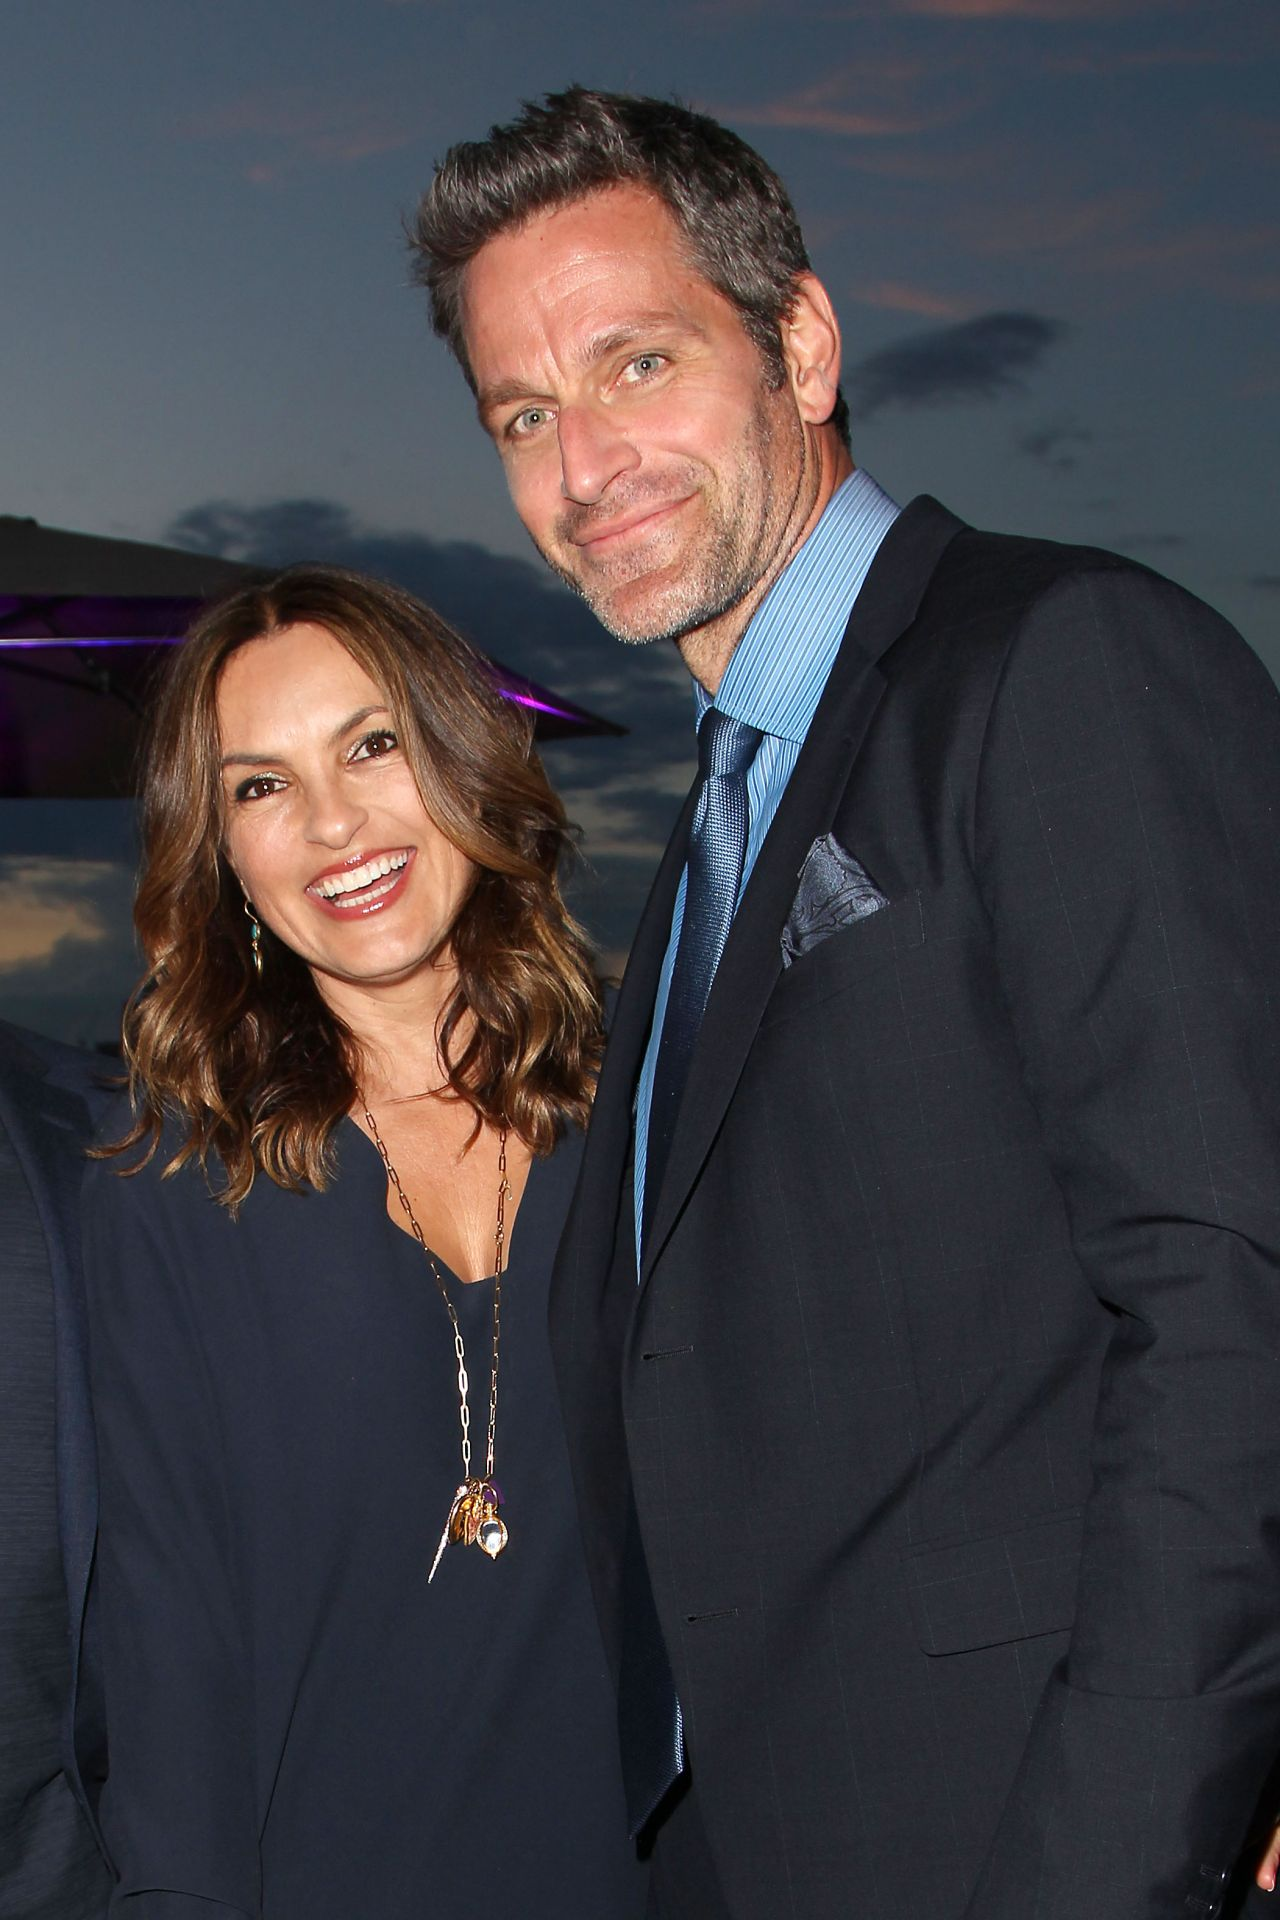 Mariska Hargitay Younger Season 4 Premiere In New York